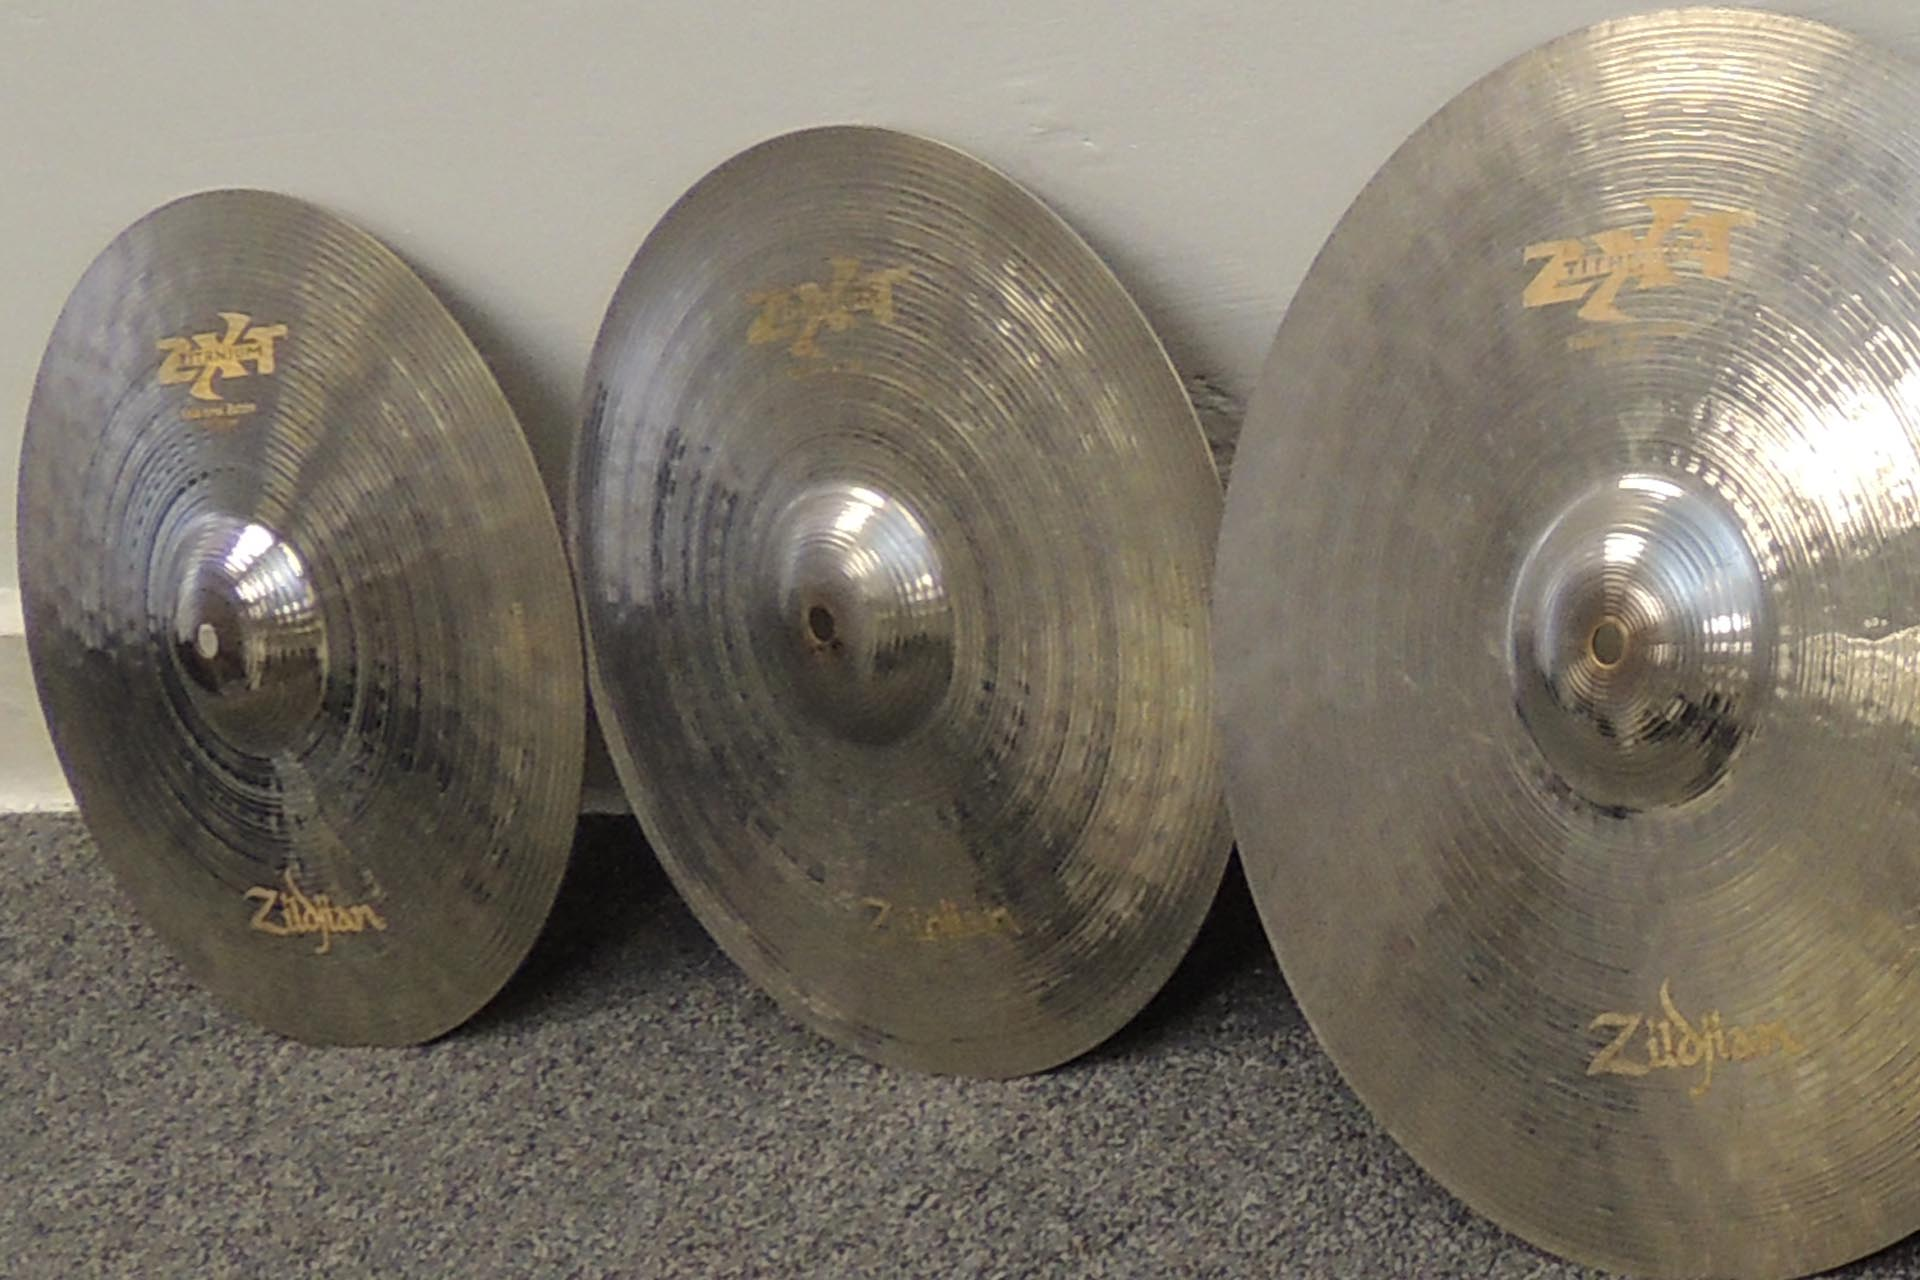 Zildjian ZXT Titanium cymbals for sale at Plasma Music